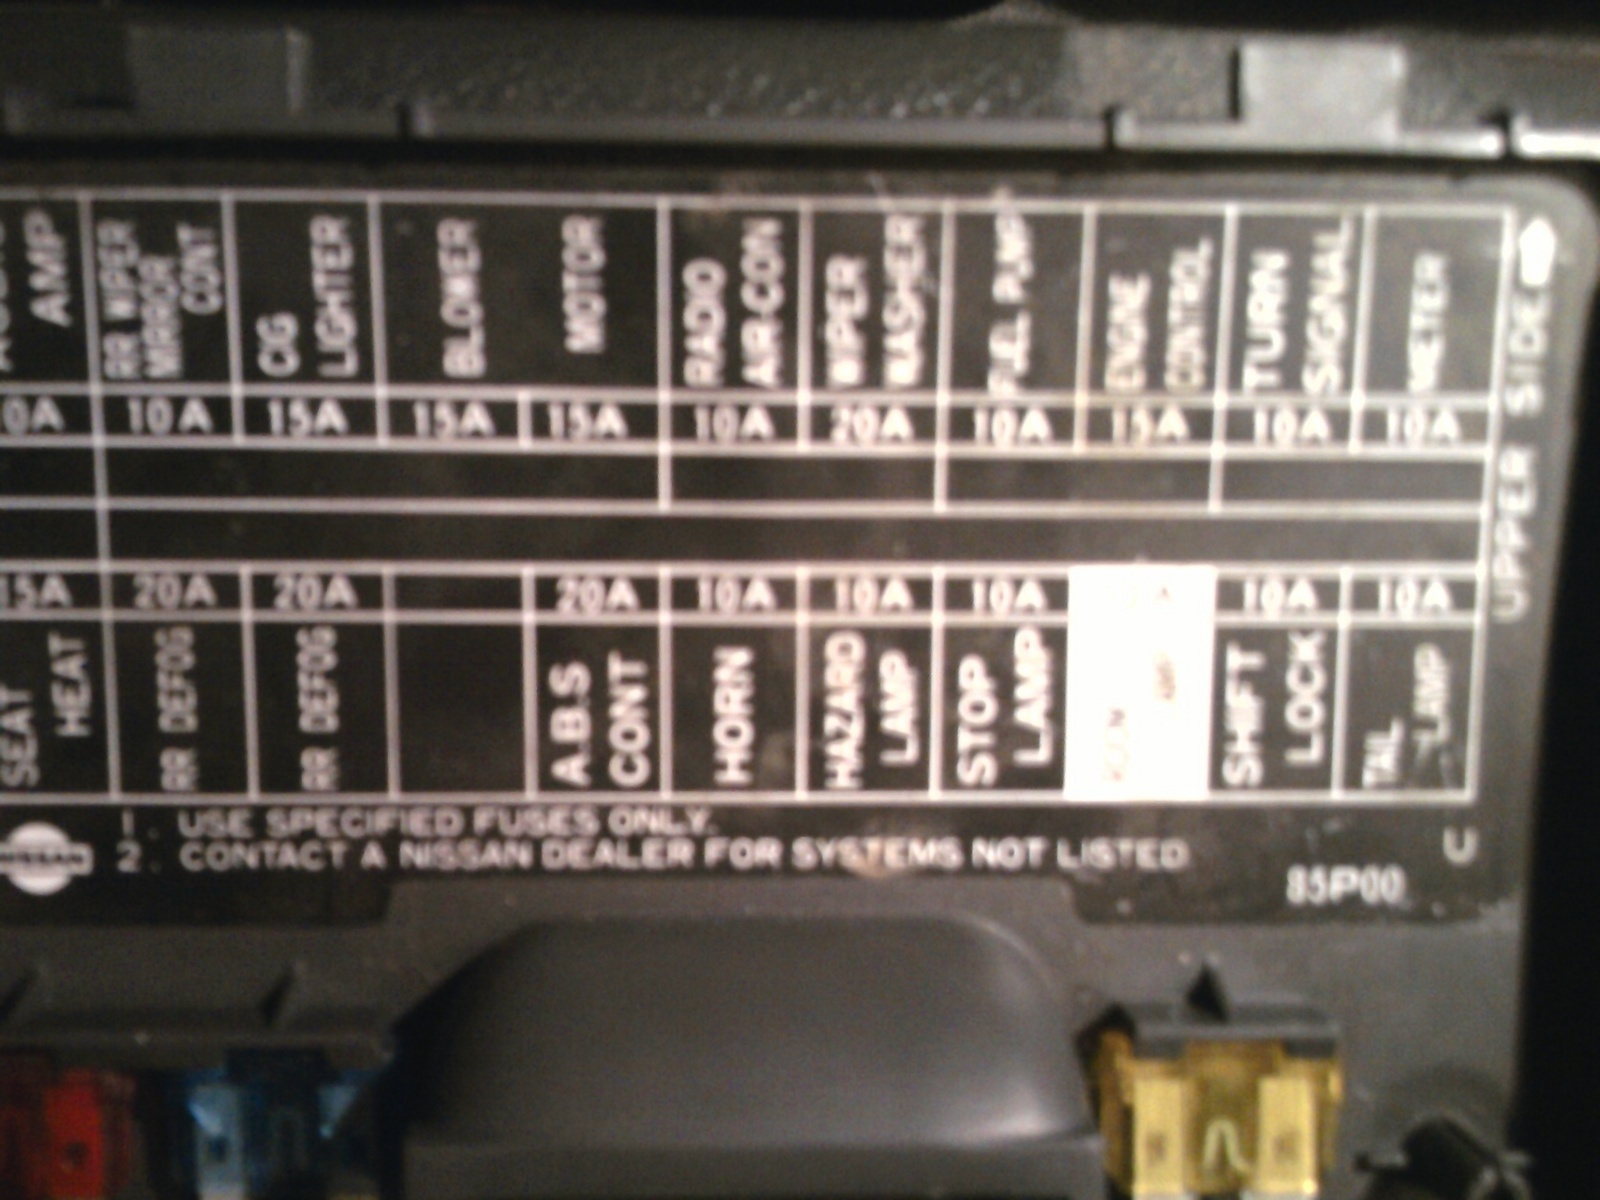 1987 nissan pathfinder fuse box diagram 2013 nissan pathfinder fuse box diagram